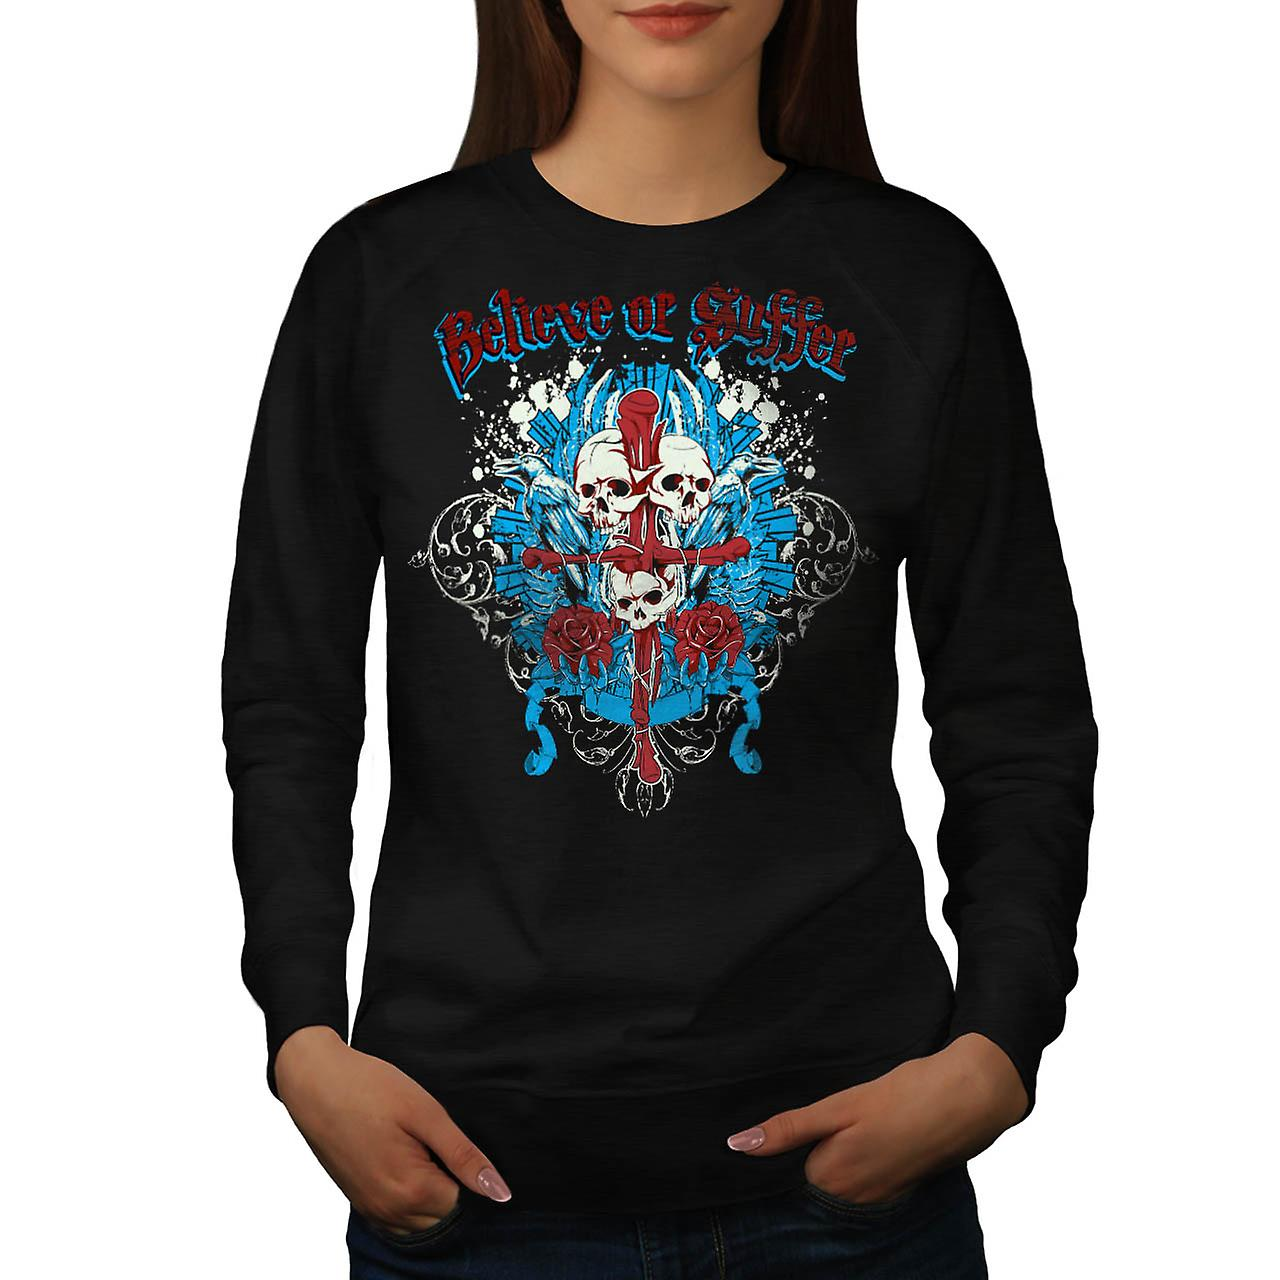 Believe Suffer Skull Cross Bones Women Black Sweatshirt | Wellcoda